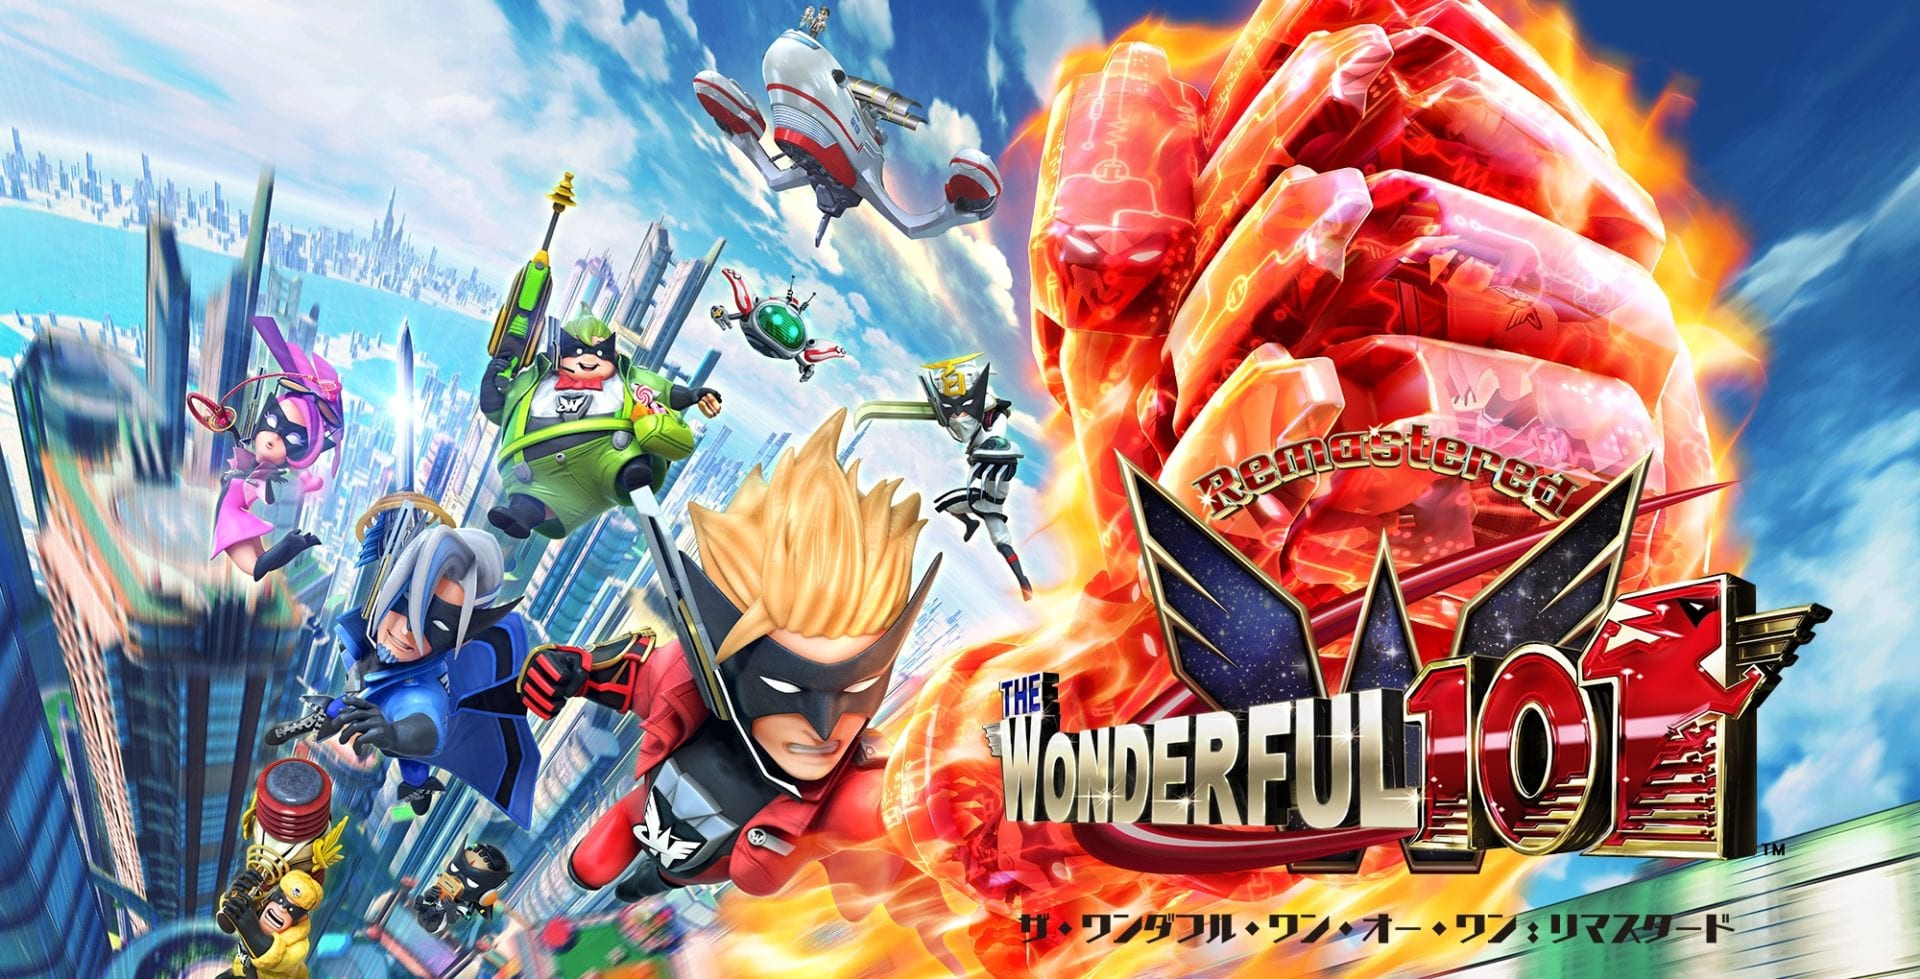 PlatinumGames has more information about The Wonderful 101 Remastered and Sol Cresta at their Super Summer Festival This Friday, stream it